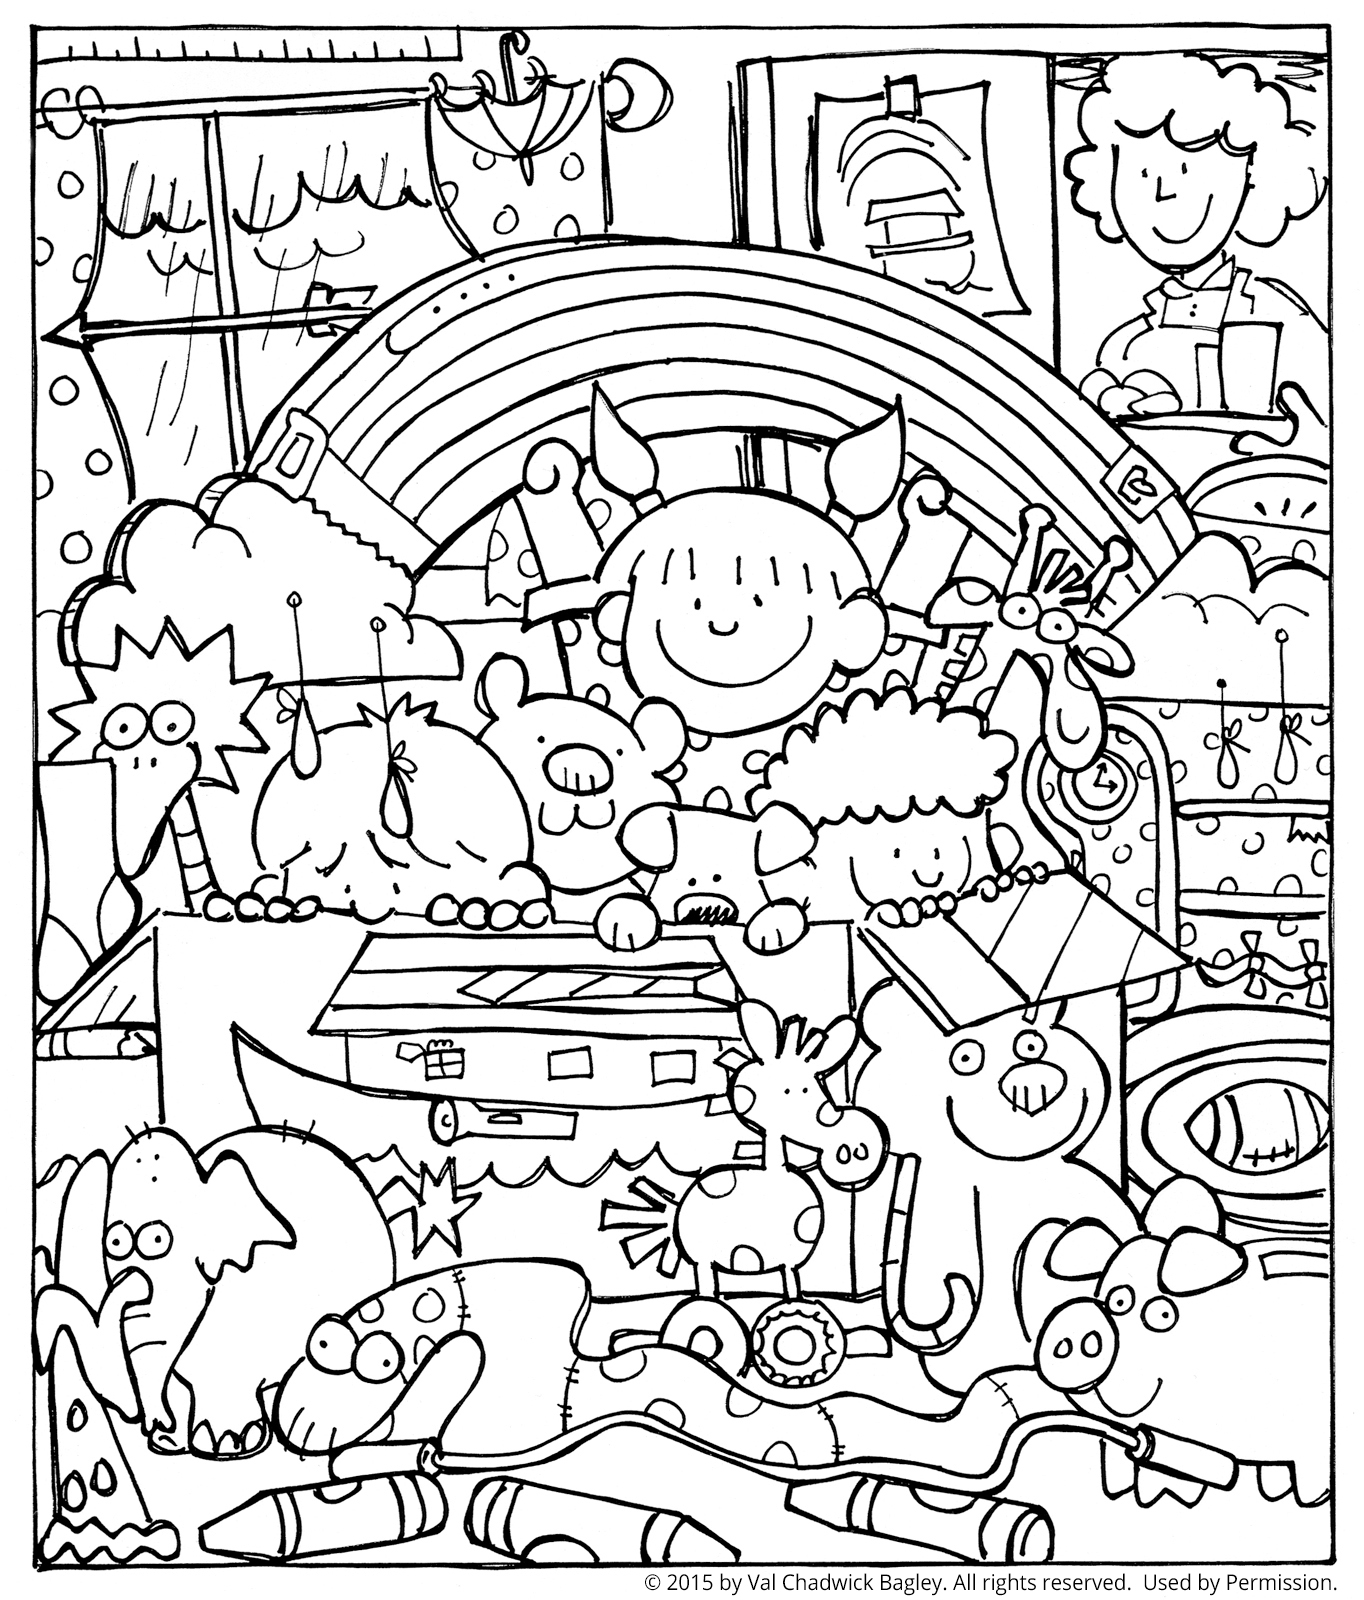 coloring page noahs ark free coloring page noahs ark ian moss creative page coloring noahs ark